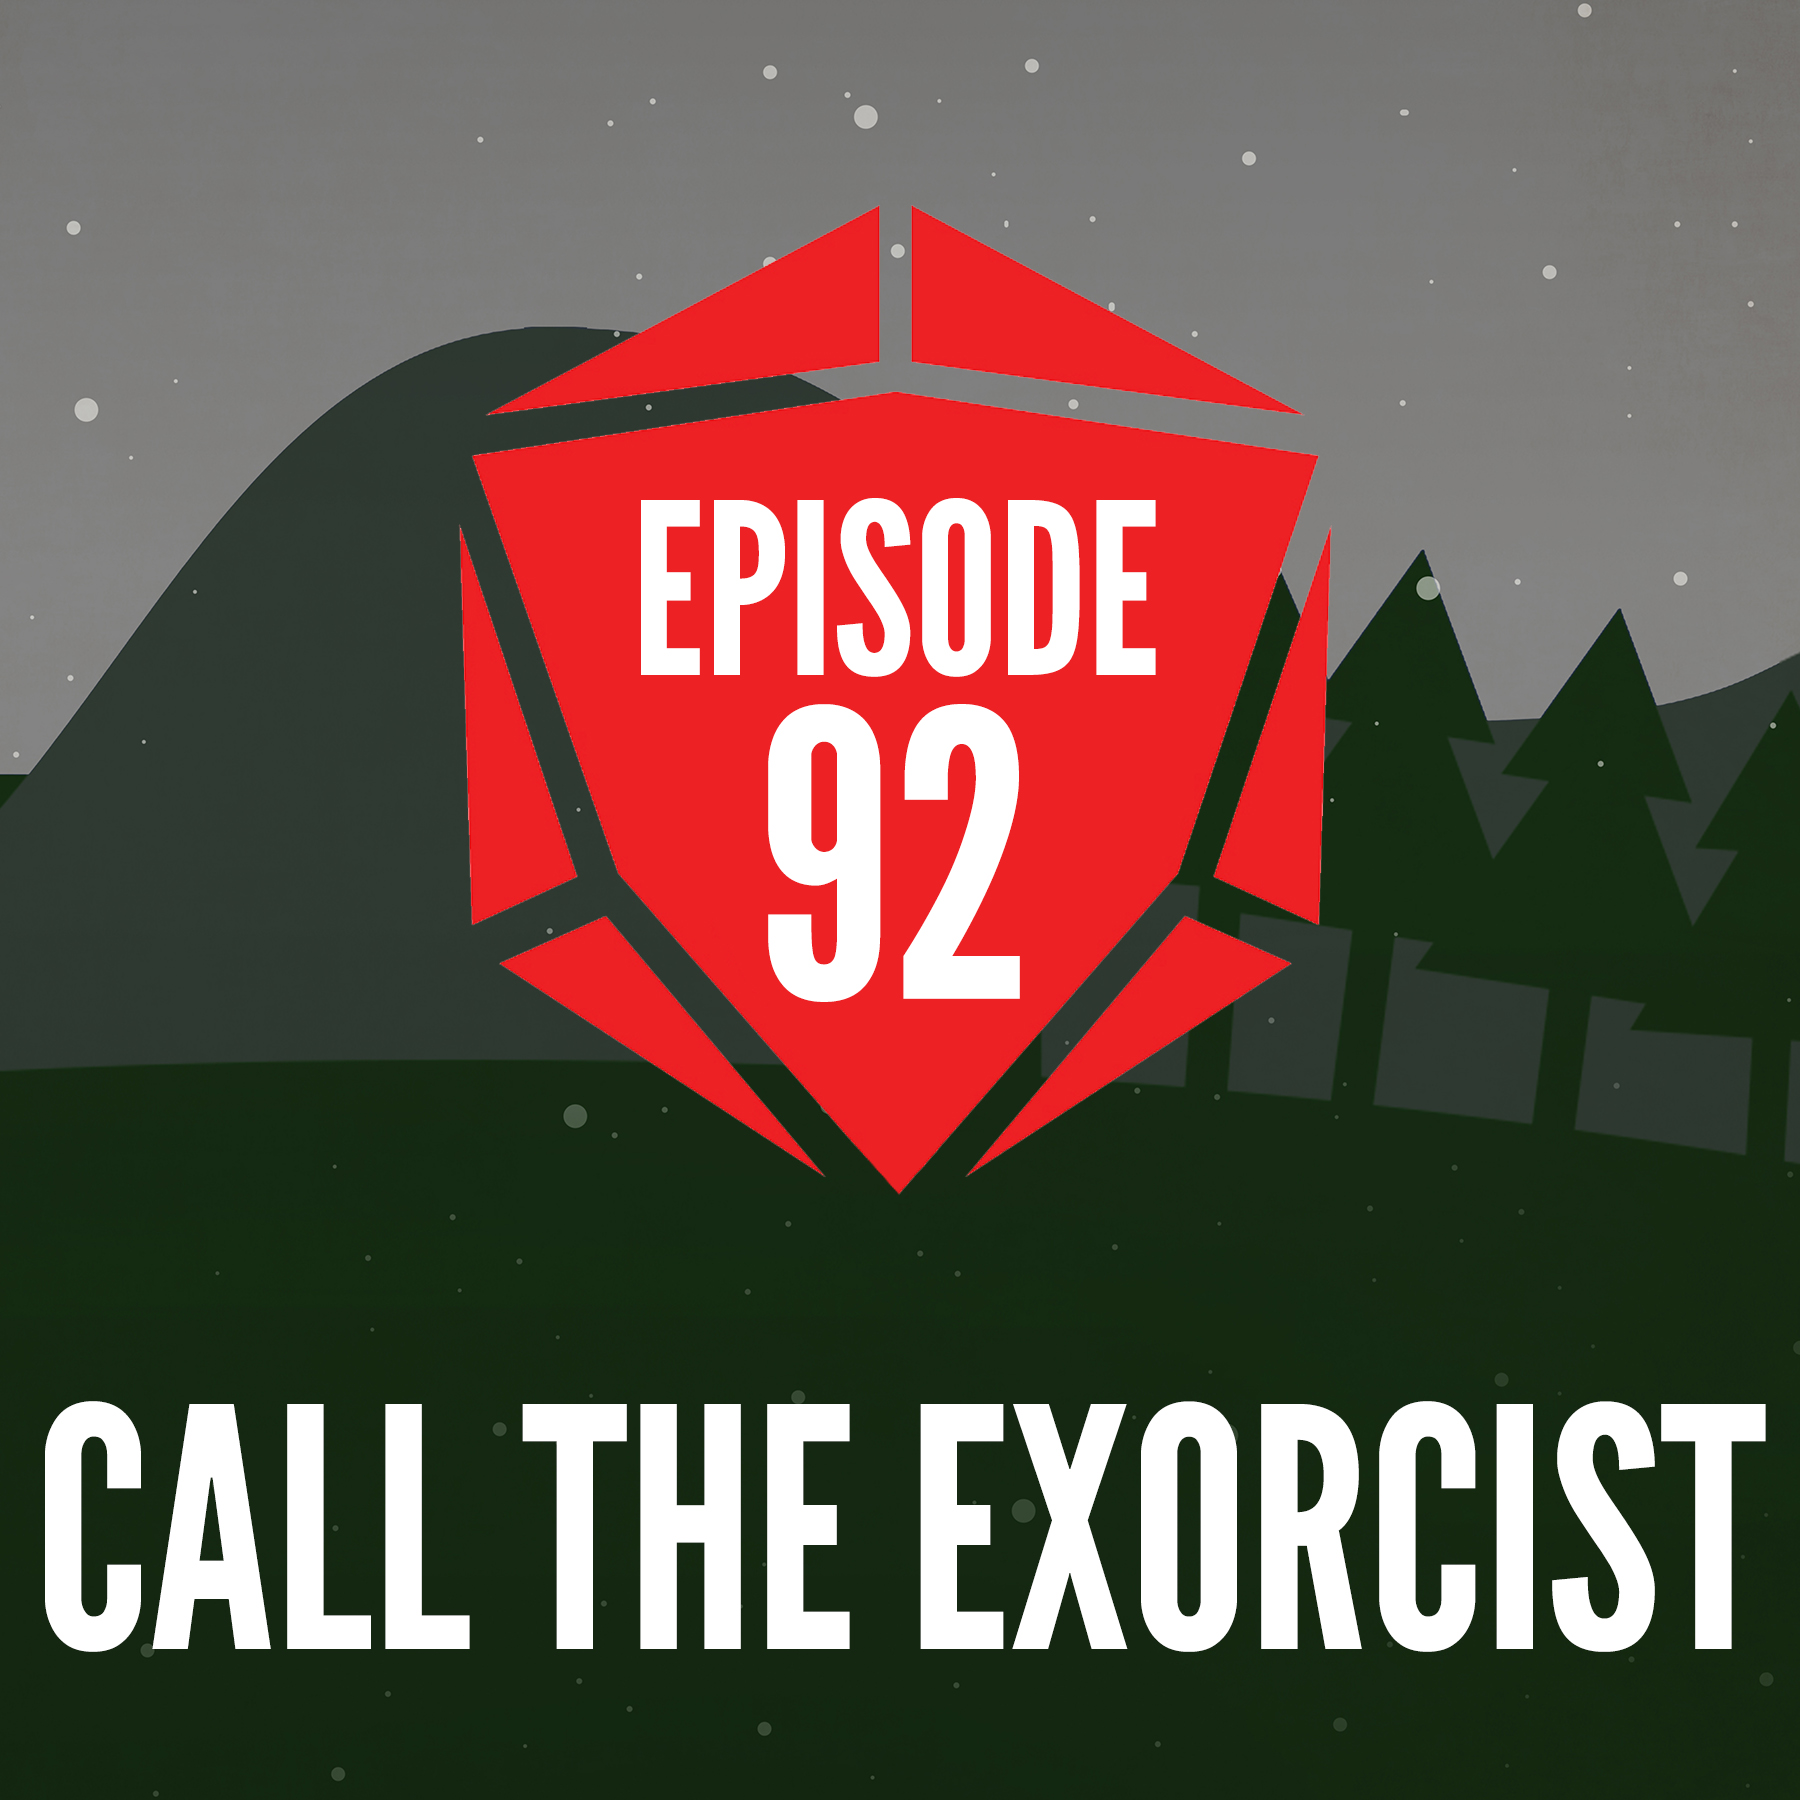 Episode 92: Call the Exorcist